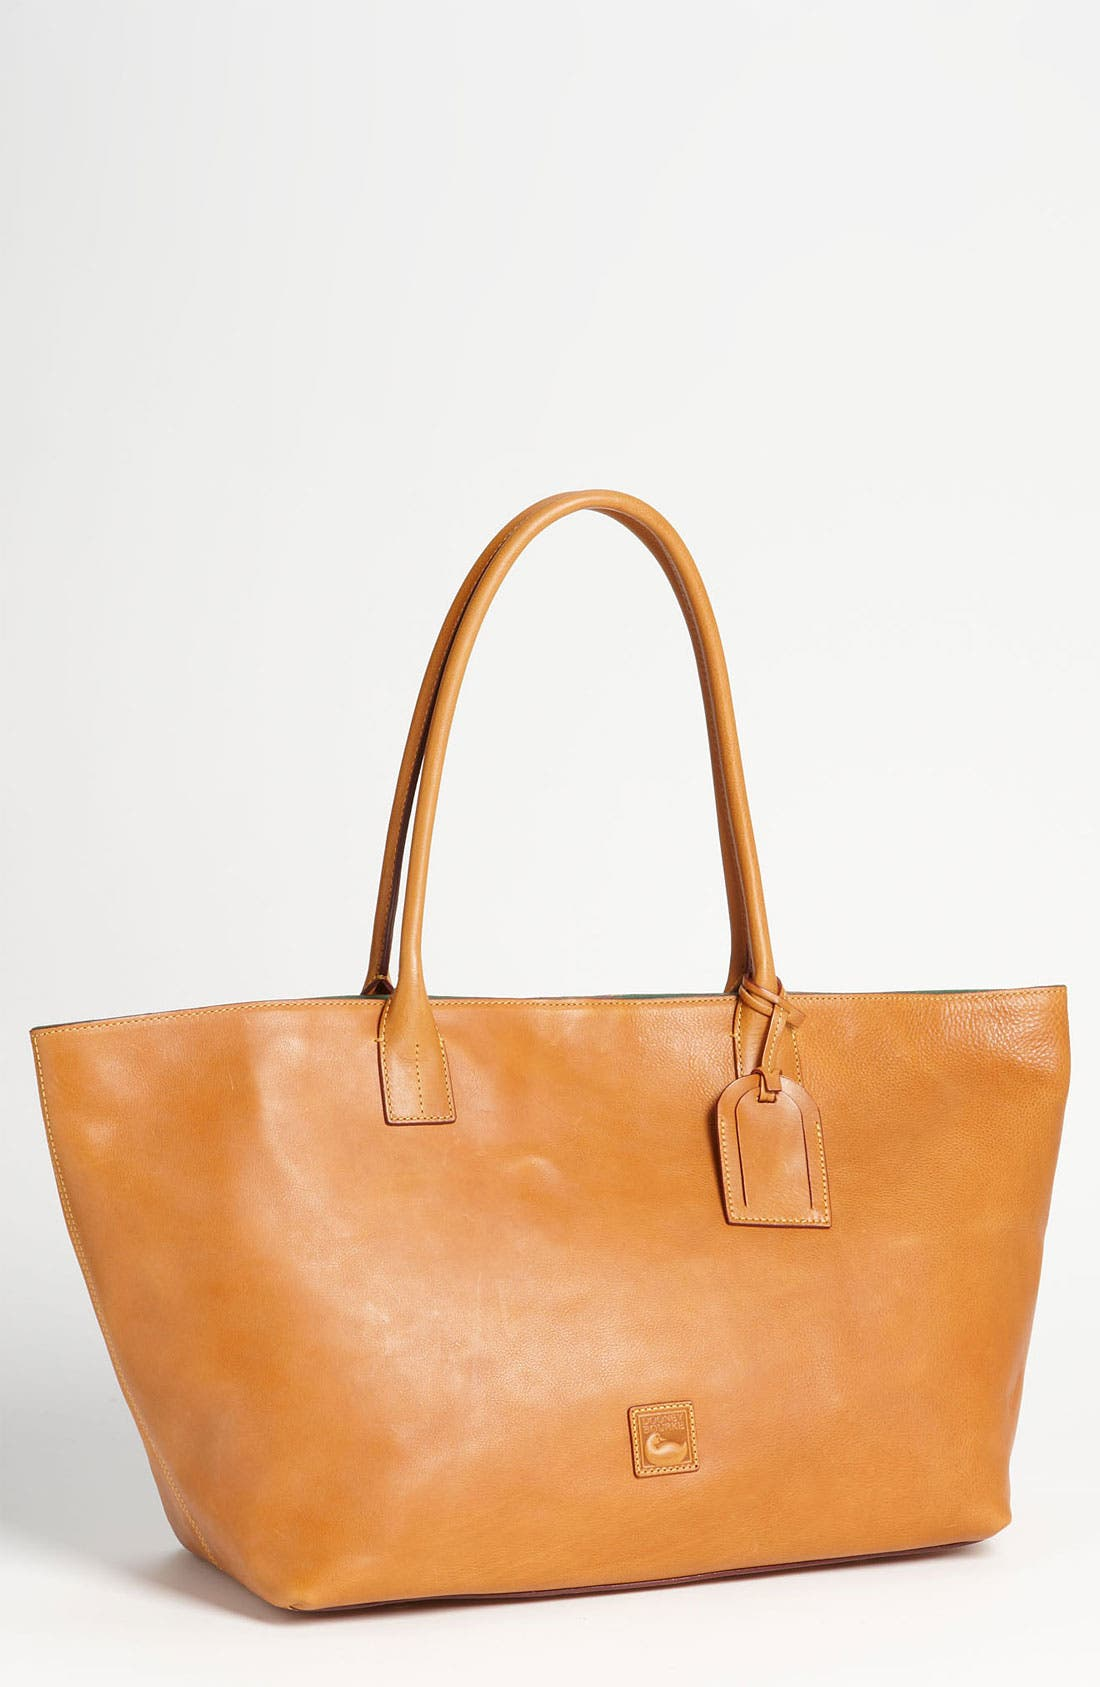 Alternate Image 1 Selected - Dooney & Bourke 'Russel - Large' Leather Tote